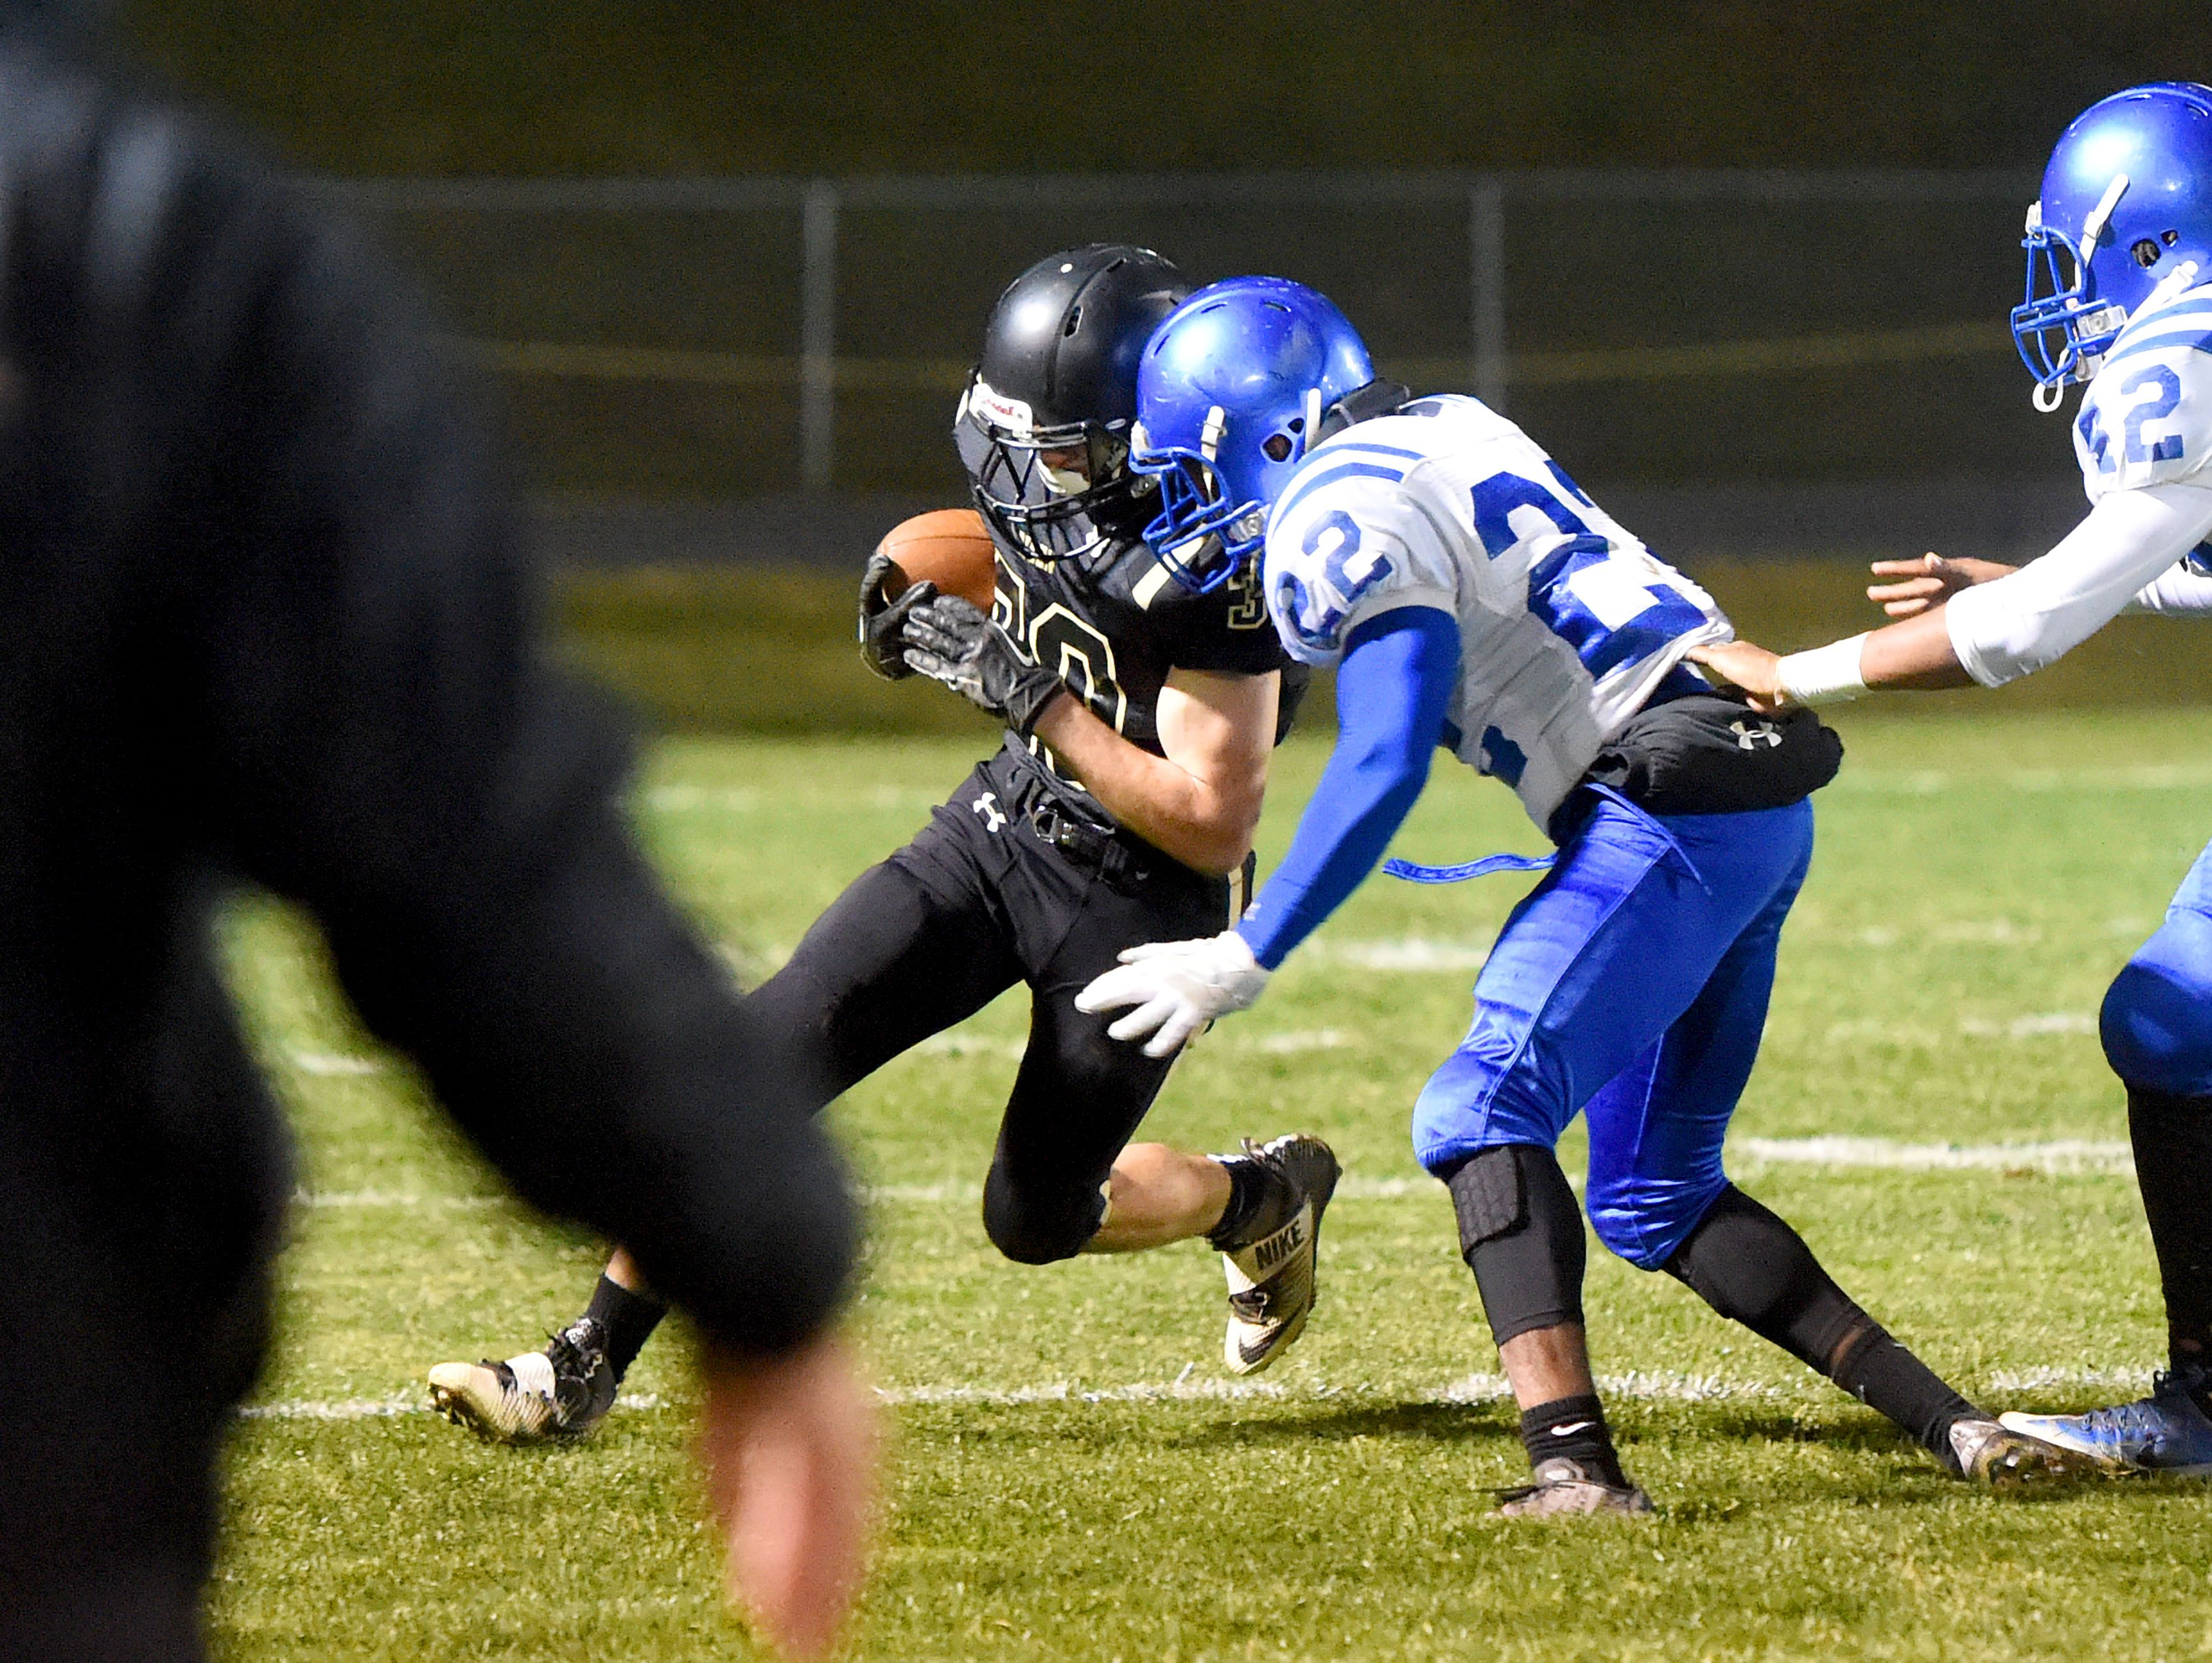 Buffalo Gap's Zach Ingram braces himself with the football as Brunswick's Sharmane Alexander goes for the tackle during a football game played in Swoope on Nov. 11, 2016.